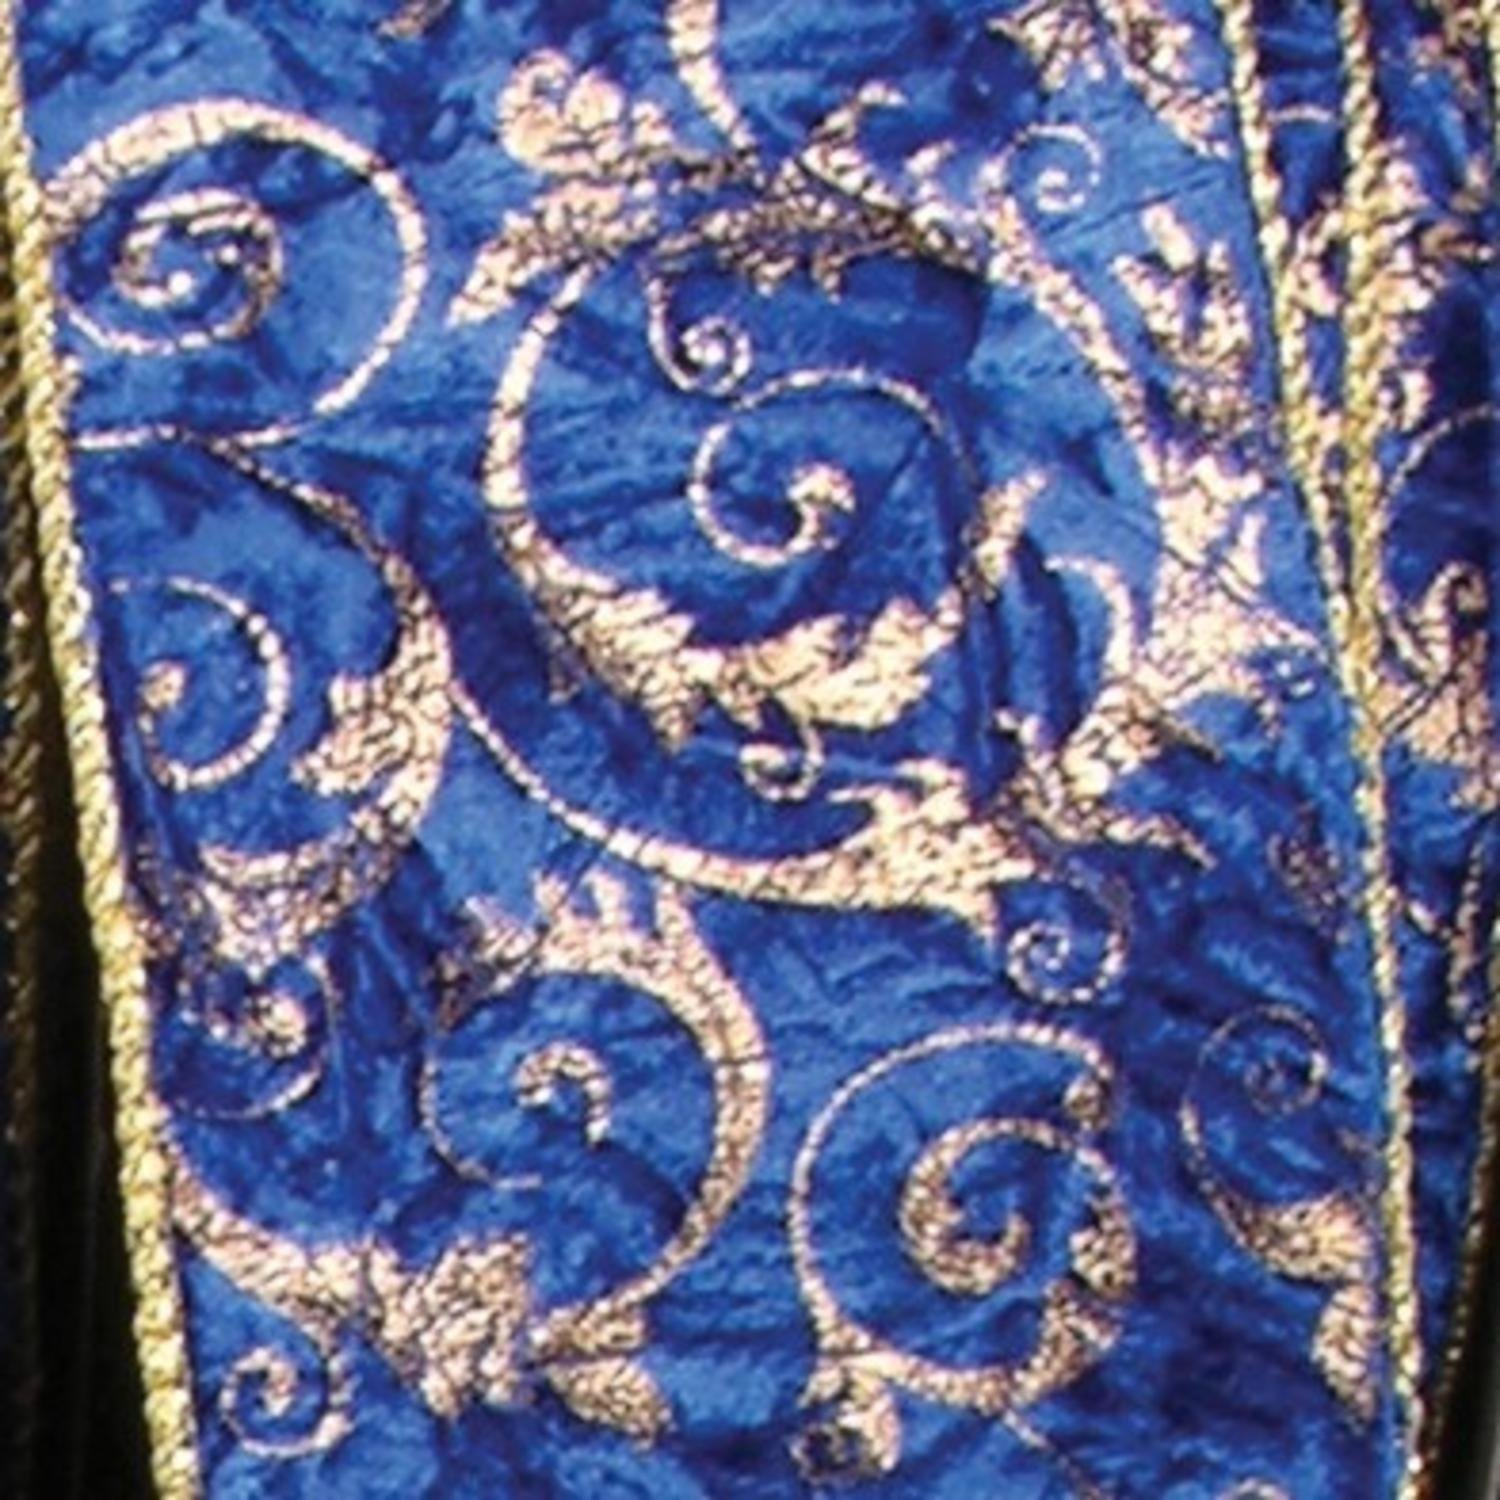 Blue with Gold Cord Edge Wired Fabric Craft Ribbon 4'' x 20 Yards by The Ribbon People